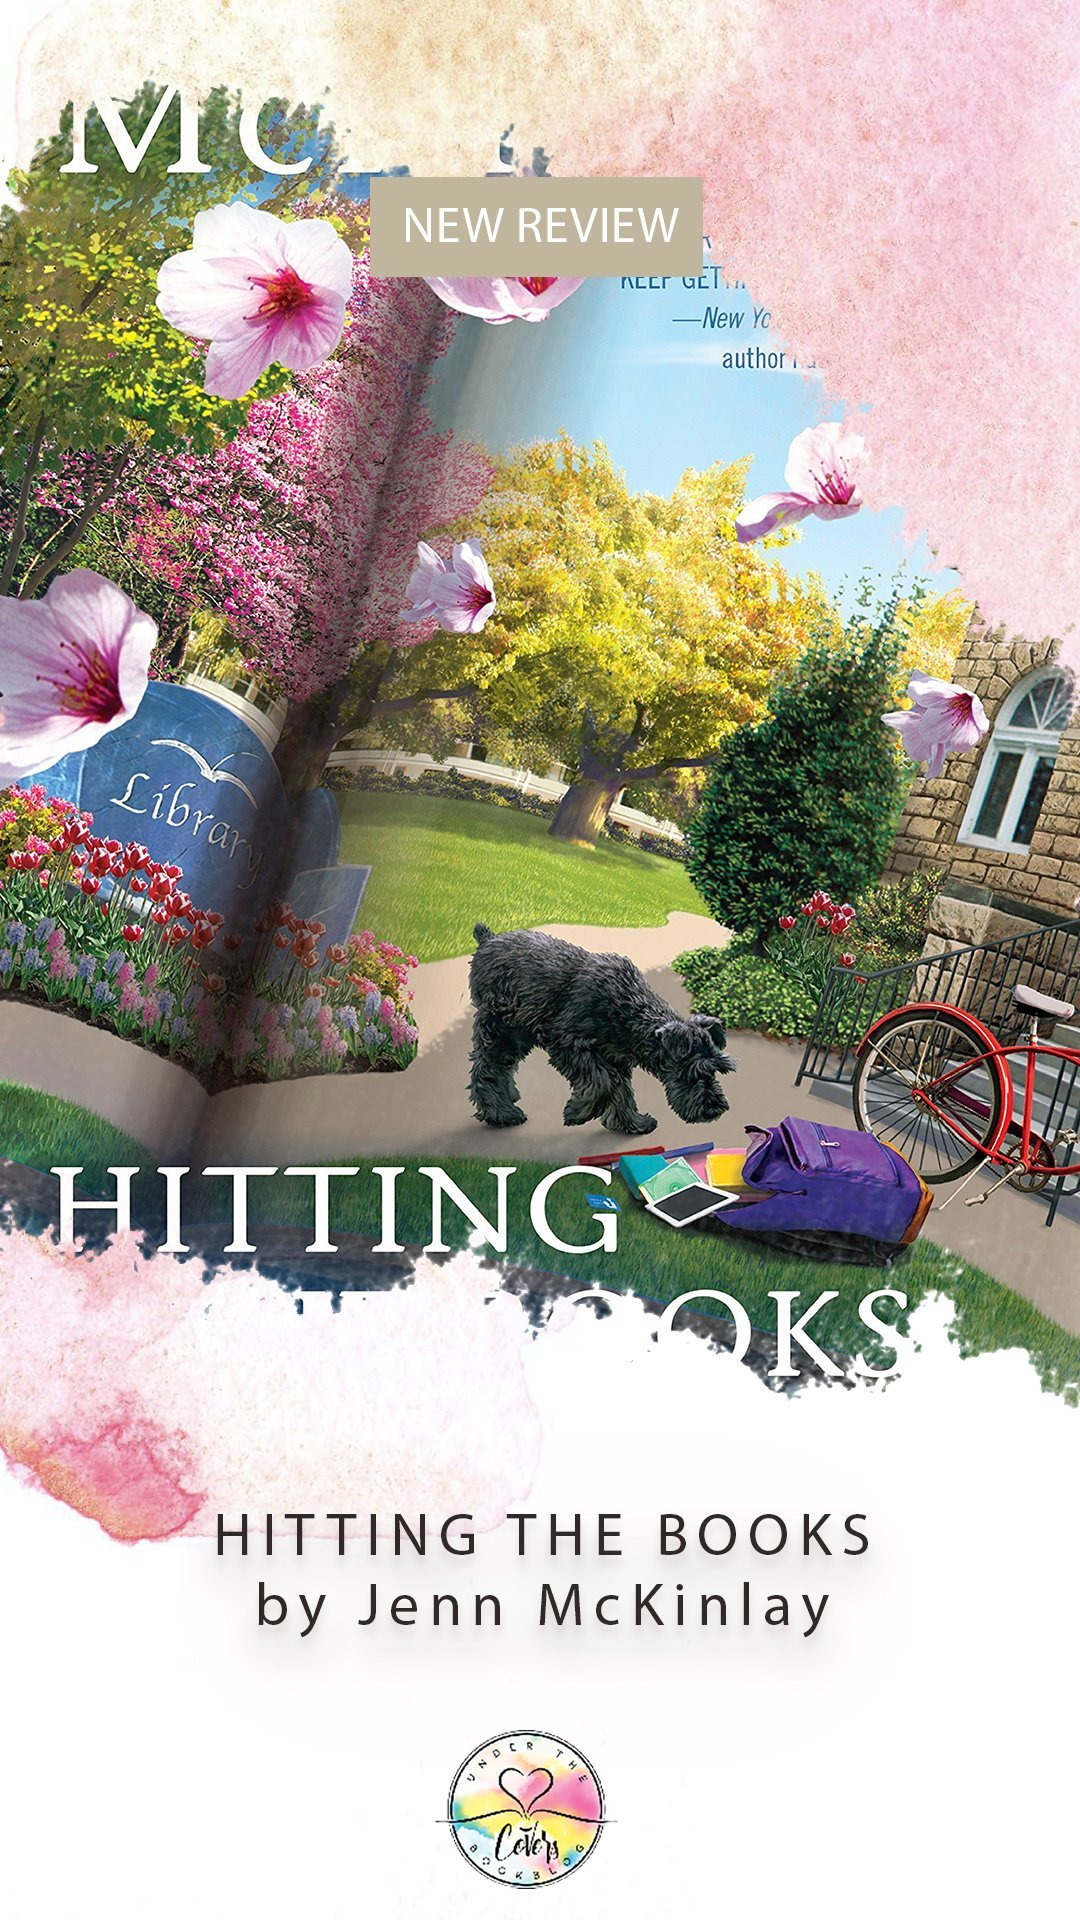 ARC Review: Hitting the Books by Jenn McKinlay